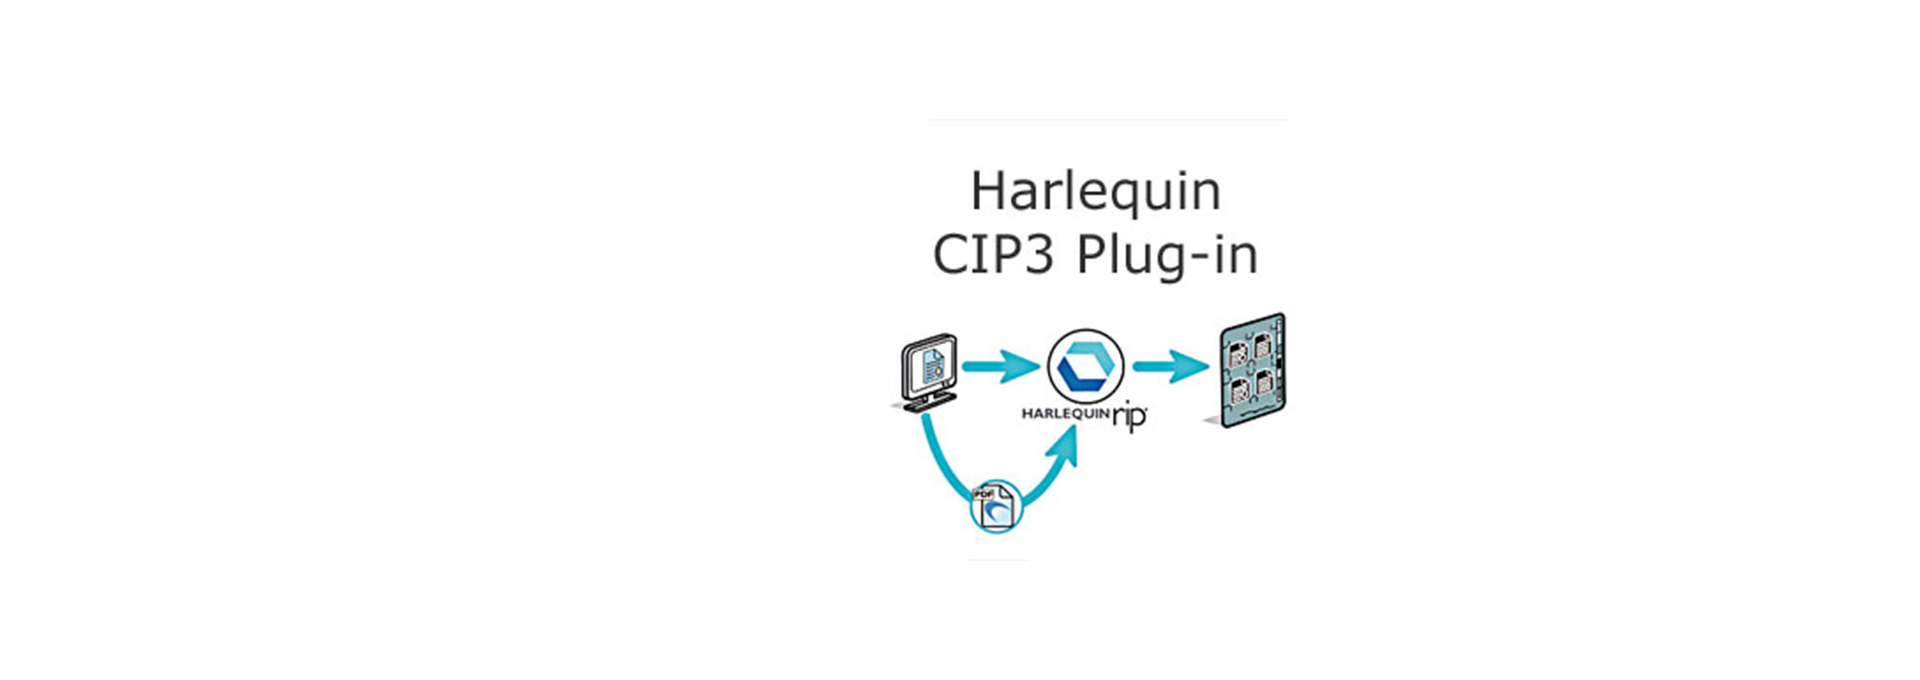 Harlequin CIP3 Plug-in